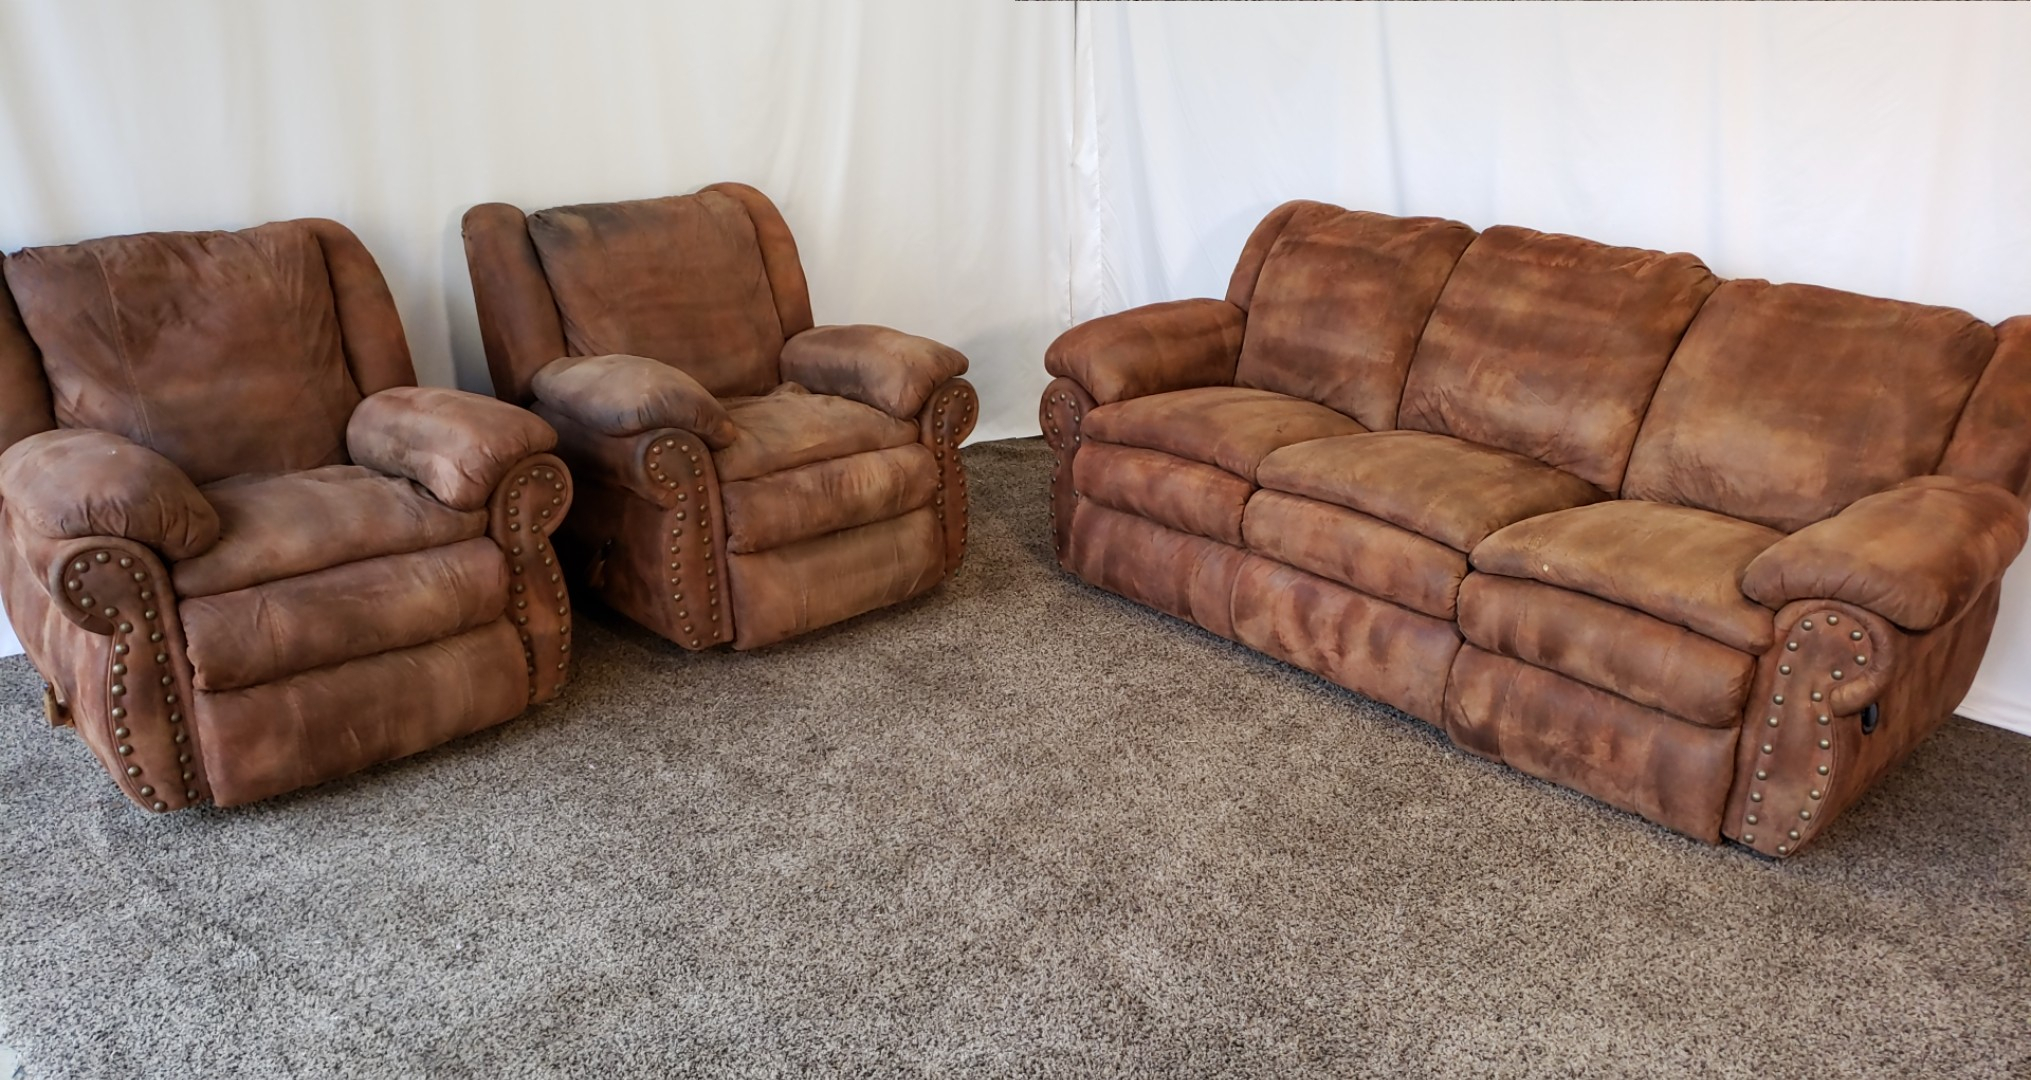 #1595 – Professionally Cleaned Rustic Brown Palomino Pertaining To Brown Sofa Chairs (View 9 of 15)